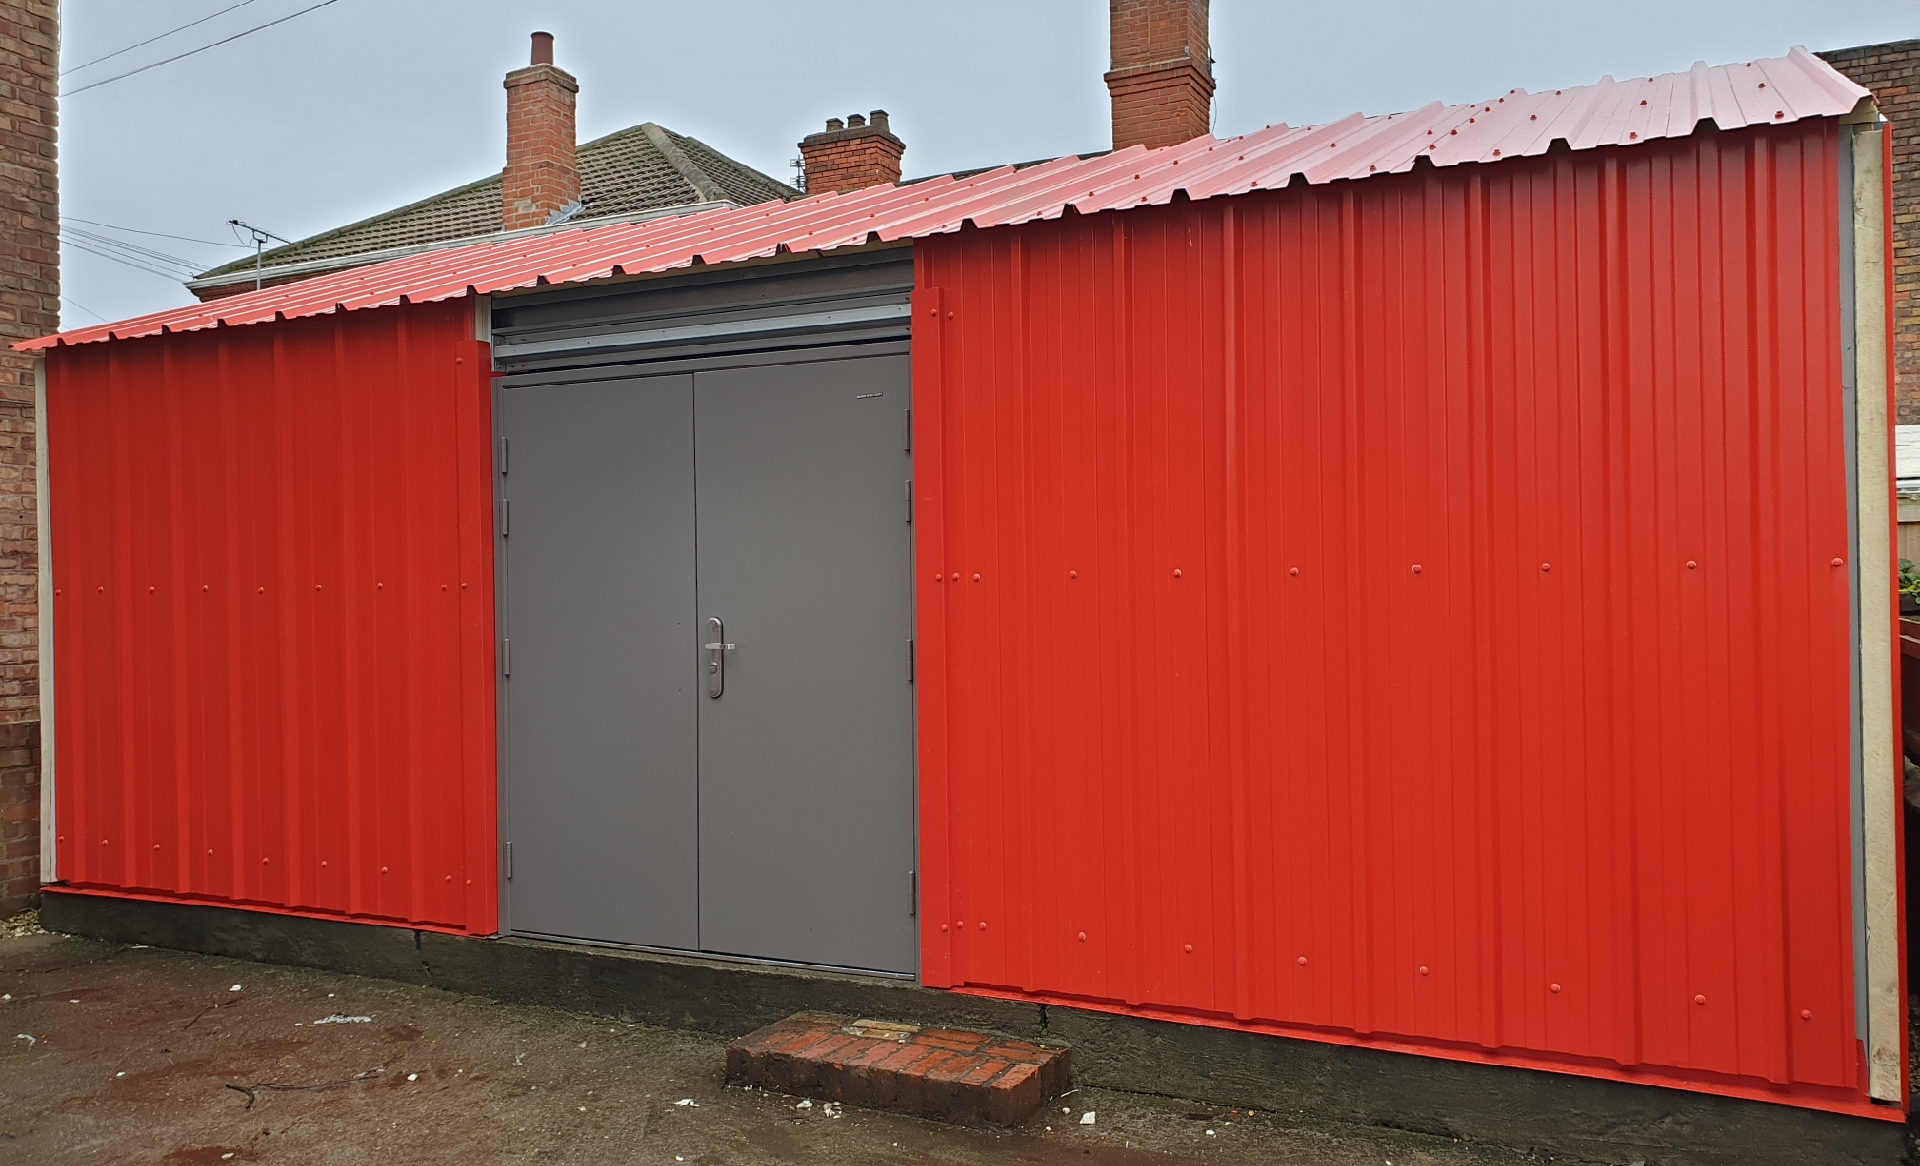 The Shed will provide a space in which members of the         community can get busy with projects that might interest them.